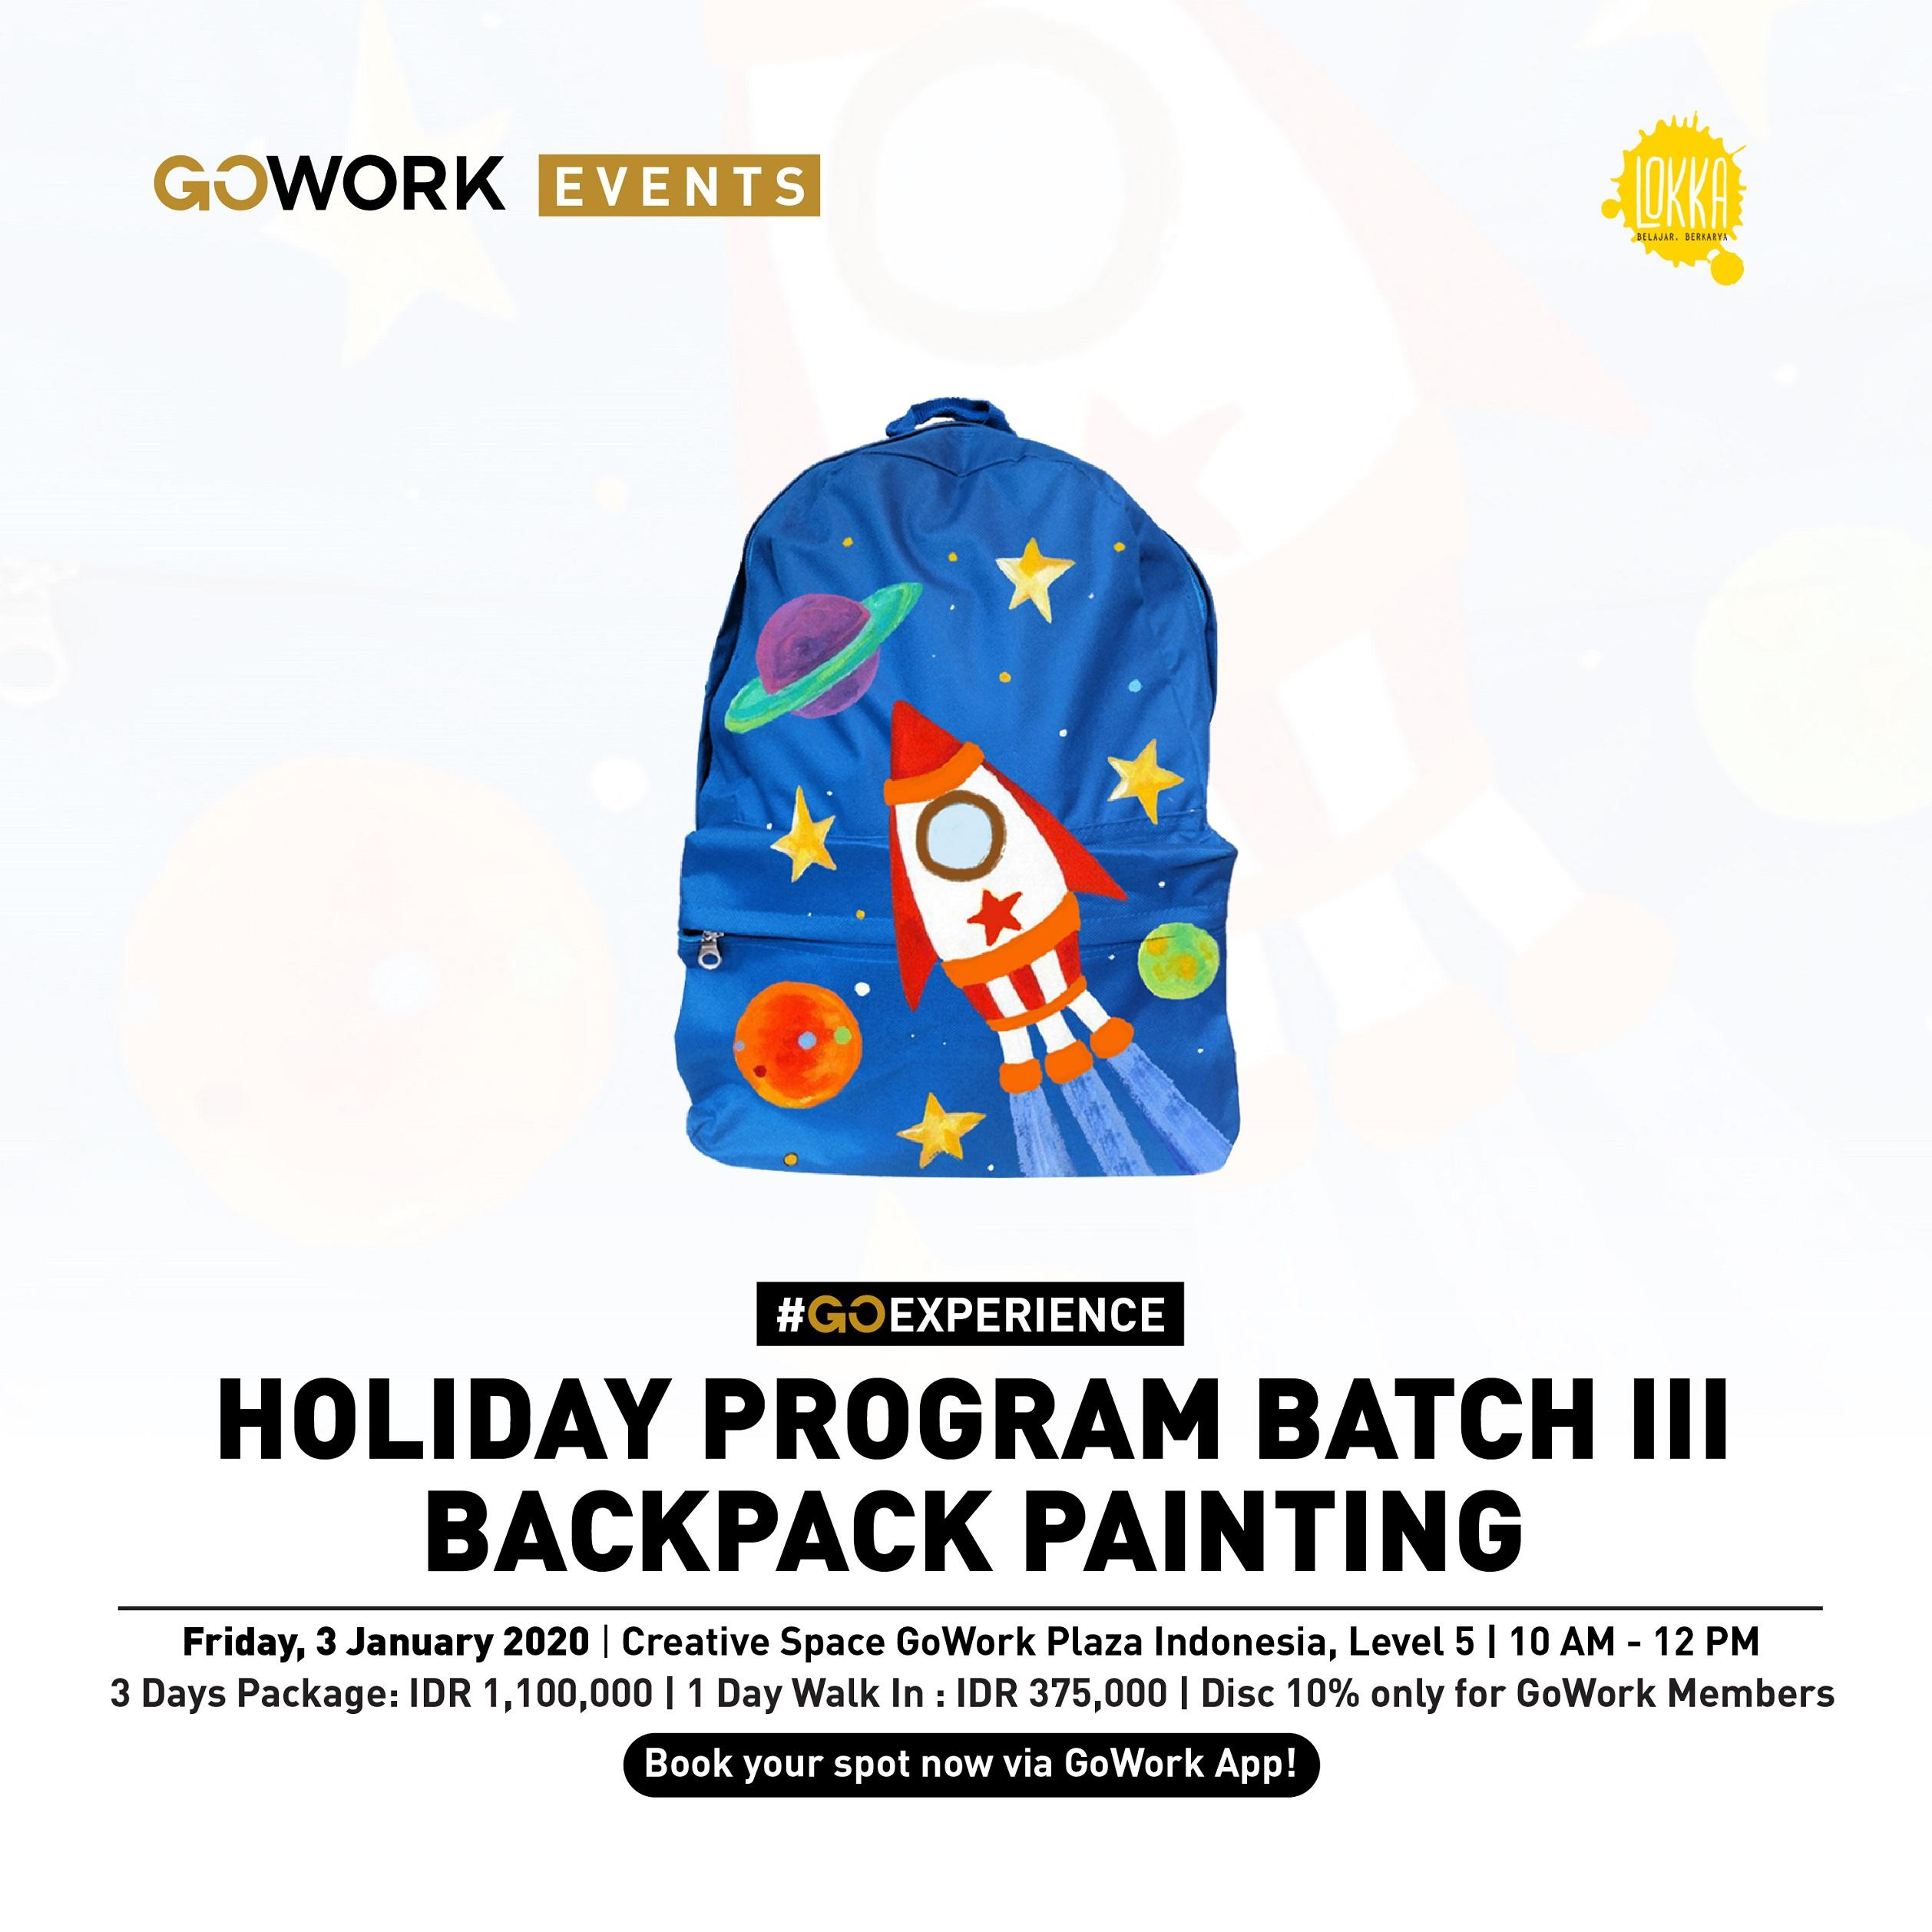 Lokka Holiday Program Batch III : Backpack Painting